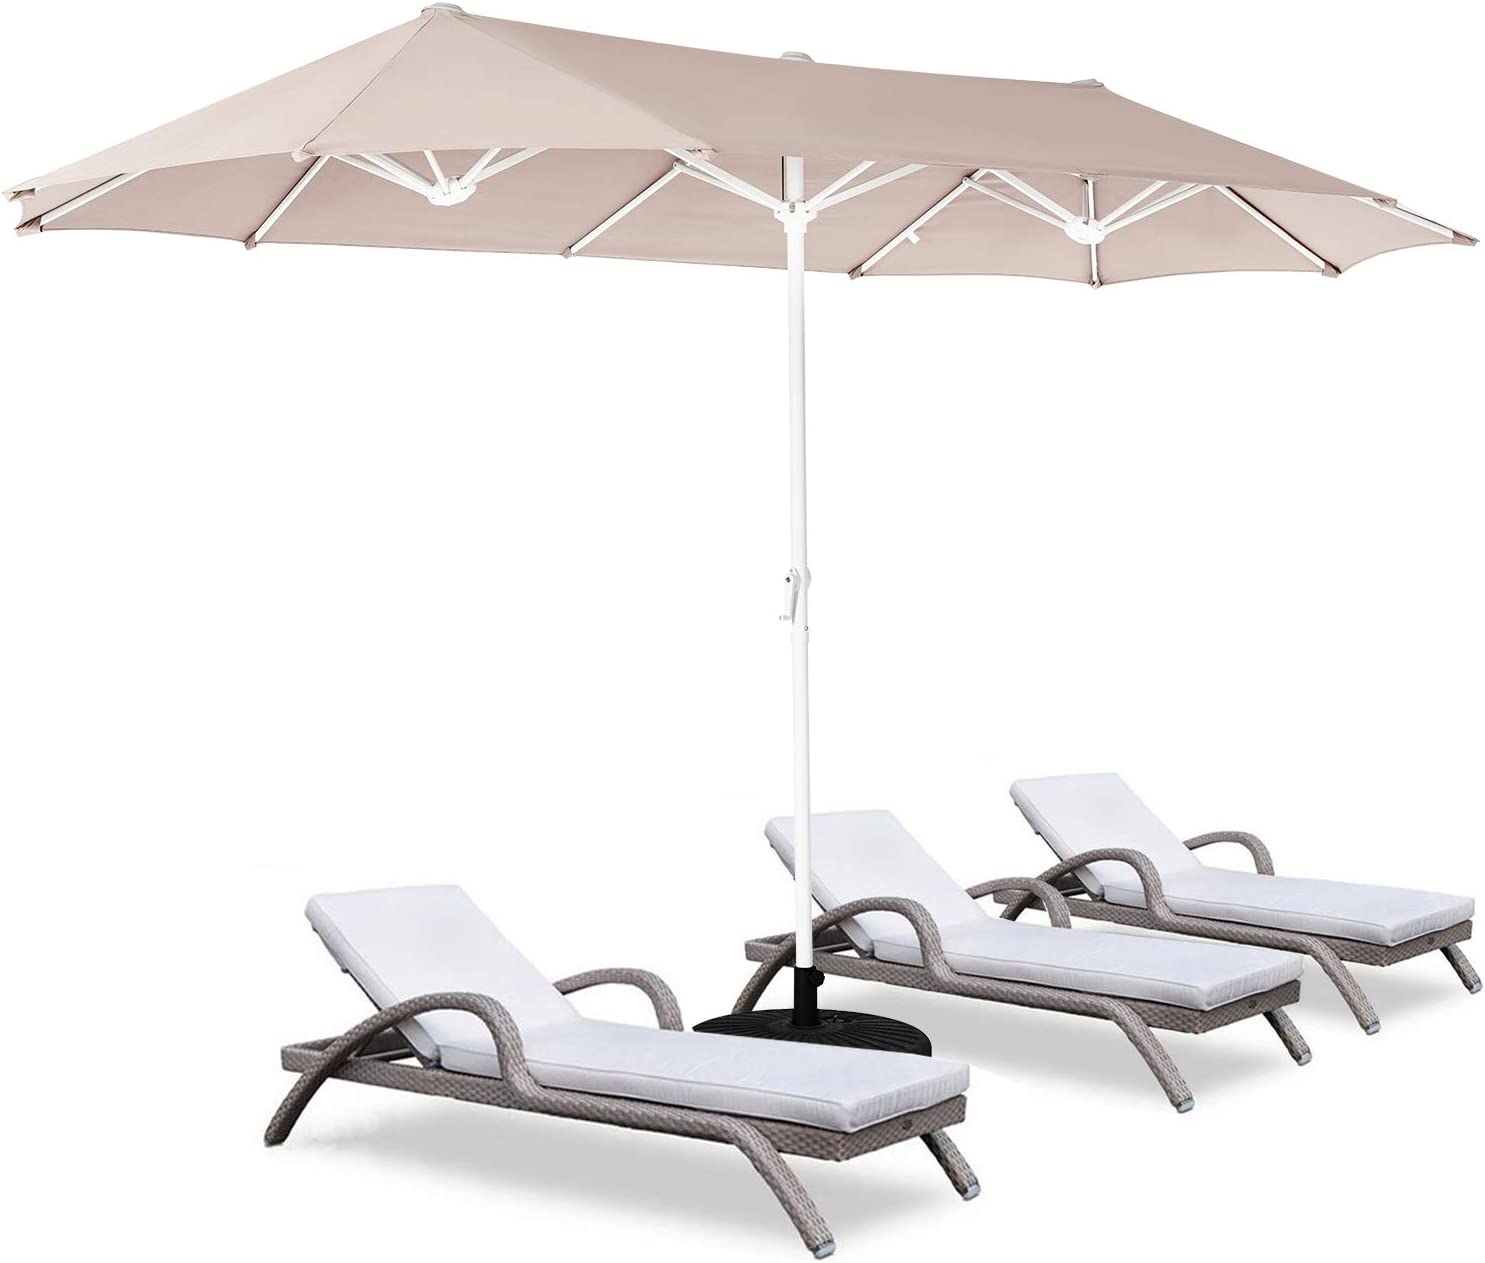 ROWHY 12ft Patio Umbrella Double-Sided Outdoor Market Umbrella Large Umbrella with Crank for Pool, Patio Furniture, Patio Shade(Beige)